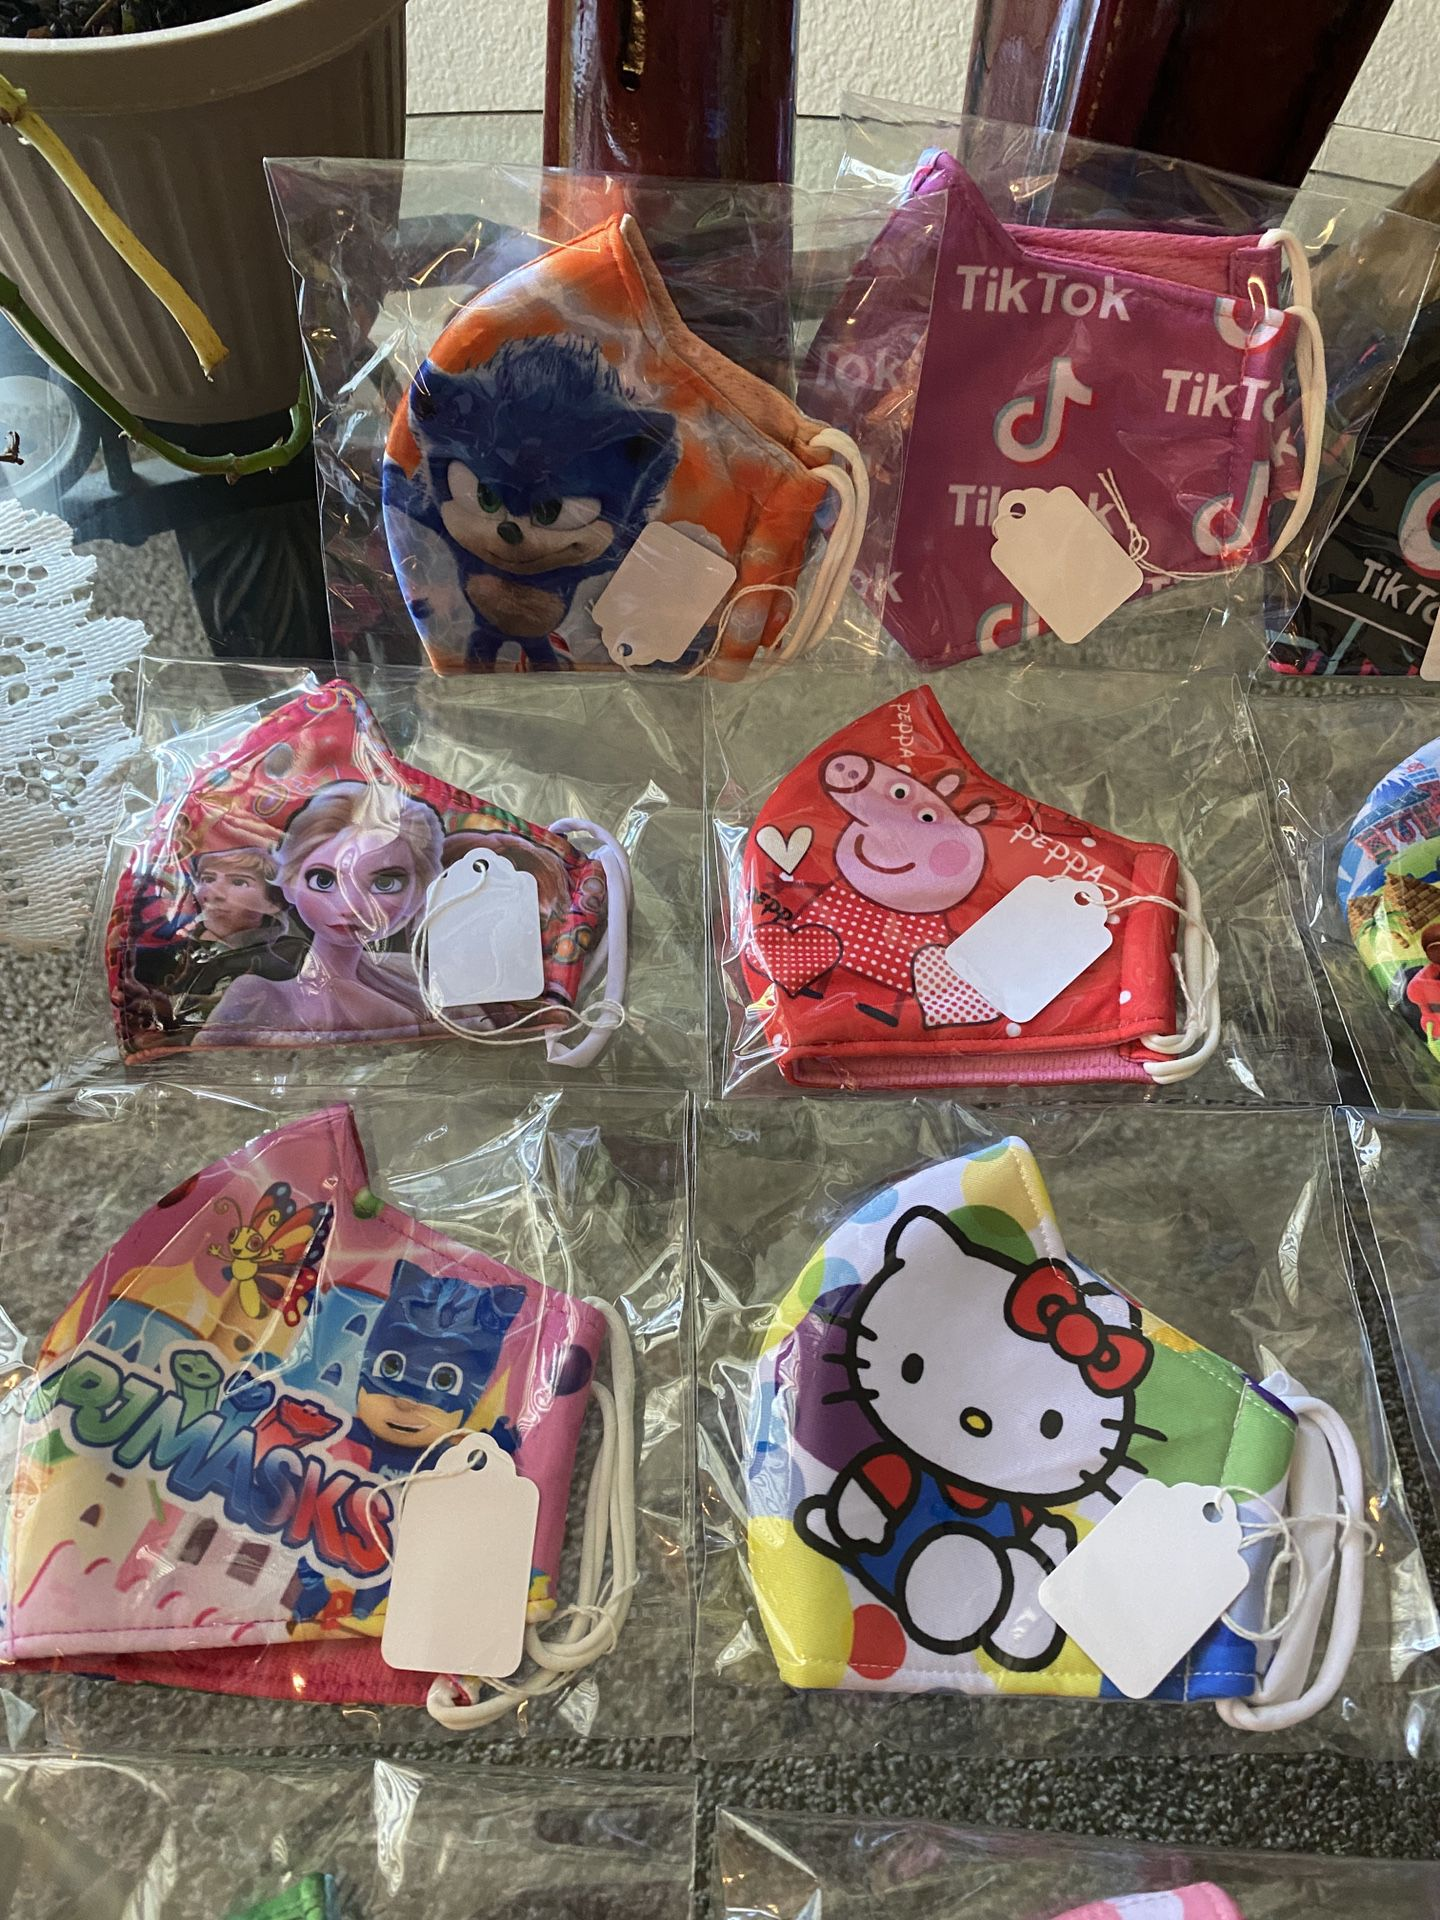 Children's Face Masks 3 Layered Protection, Washable, Comfortable And Breathable